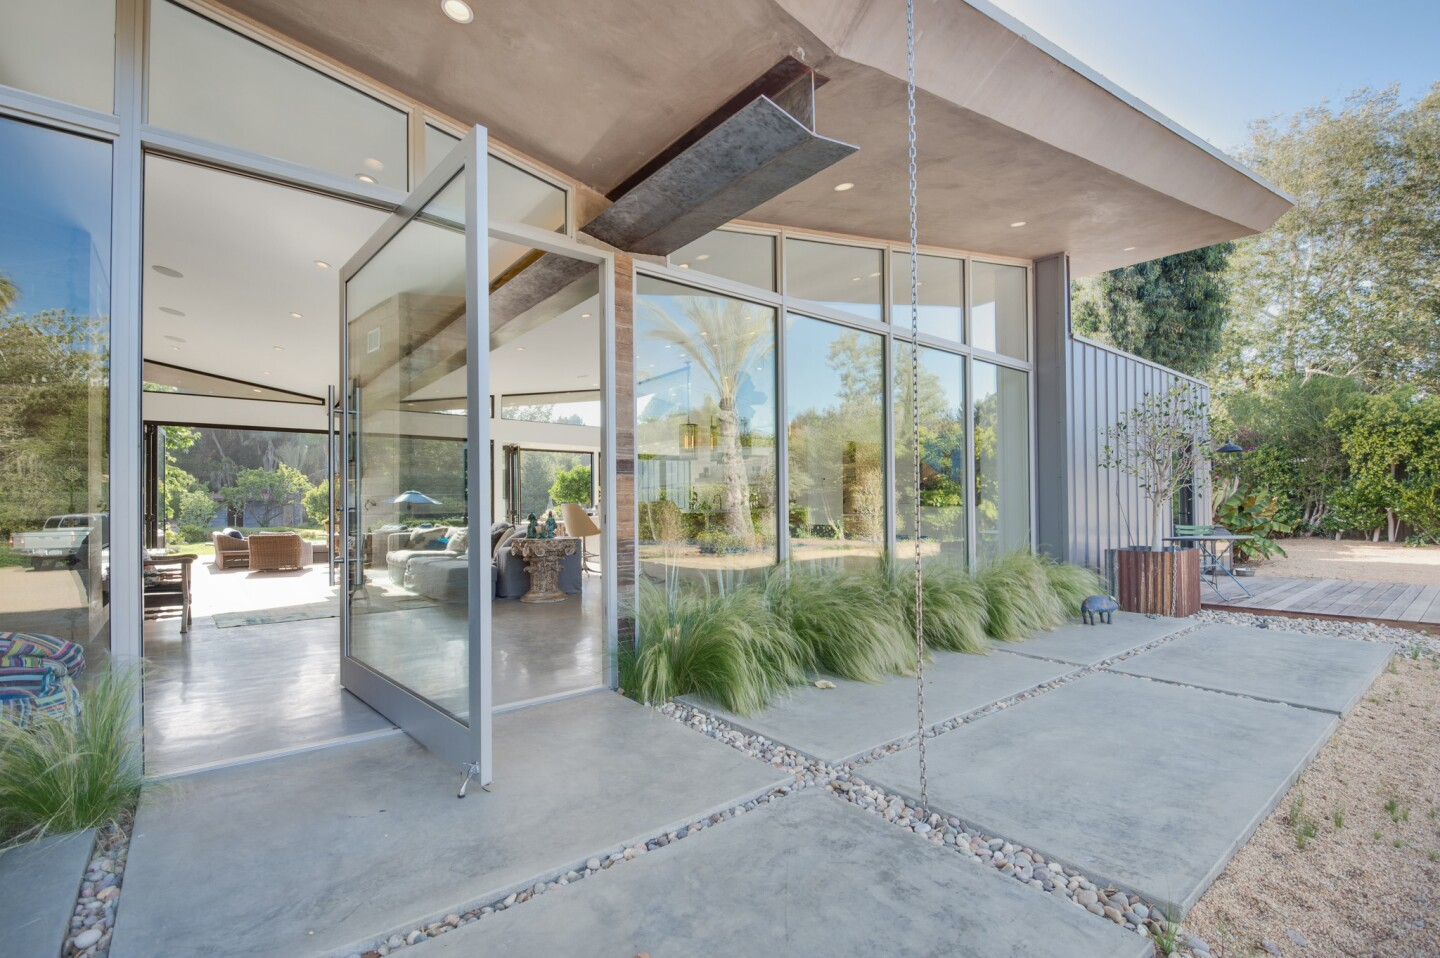 Home of the Day: Malibu compound with modern giddy-up and go